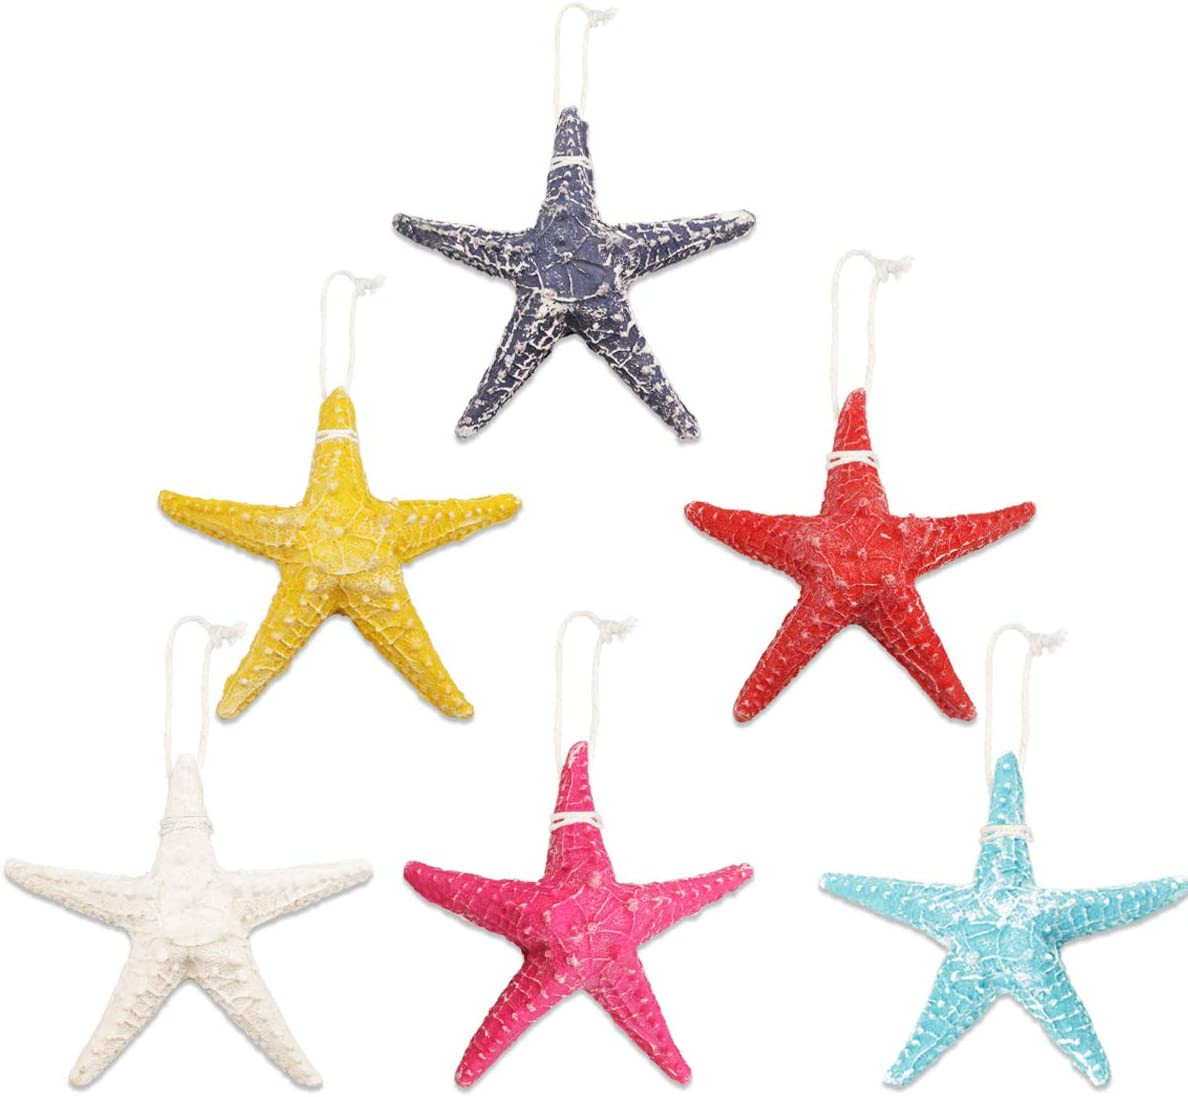 6 Pcs Large Colorful Starfish Decor Resin Knobby Starfish Decorative Flatback Starfish Ornaments for Beach Theme Party DIY Crafts Home Decorations Supplies Wall Decor Christmas Ornaments,5.1 Inch